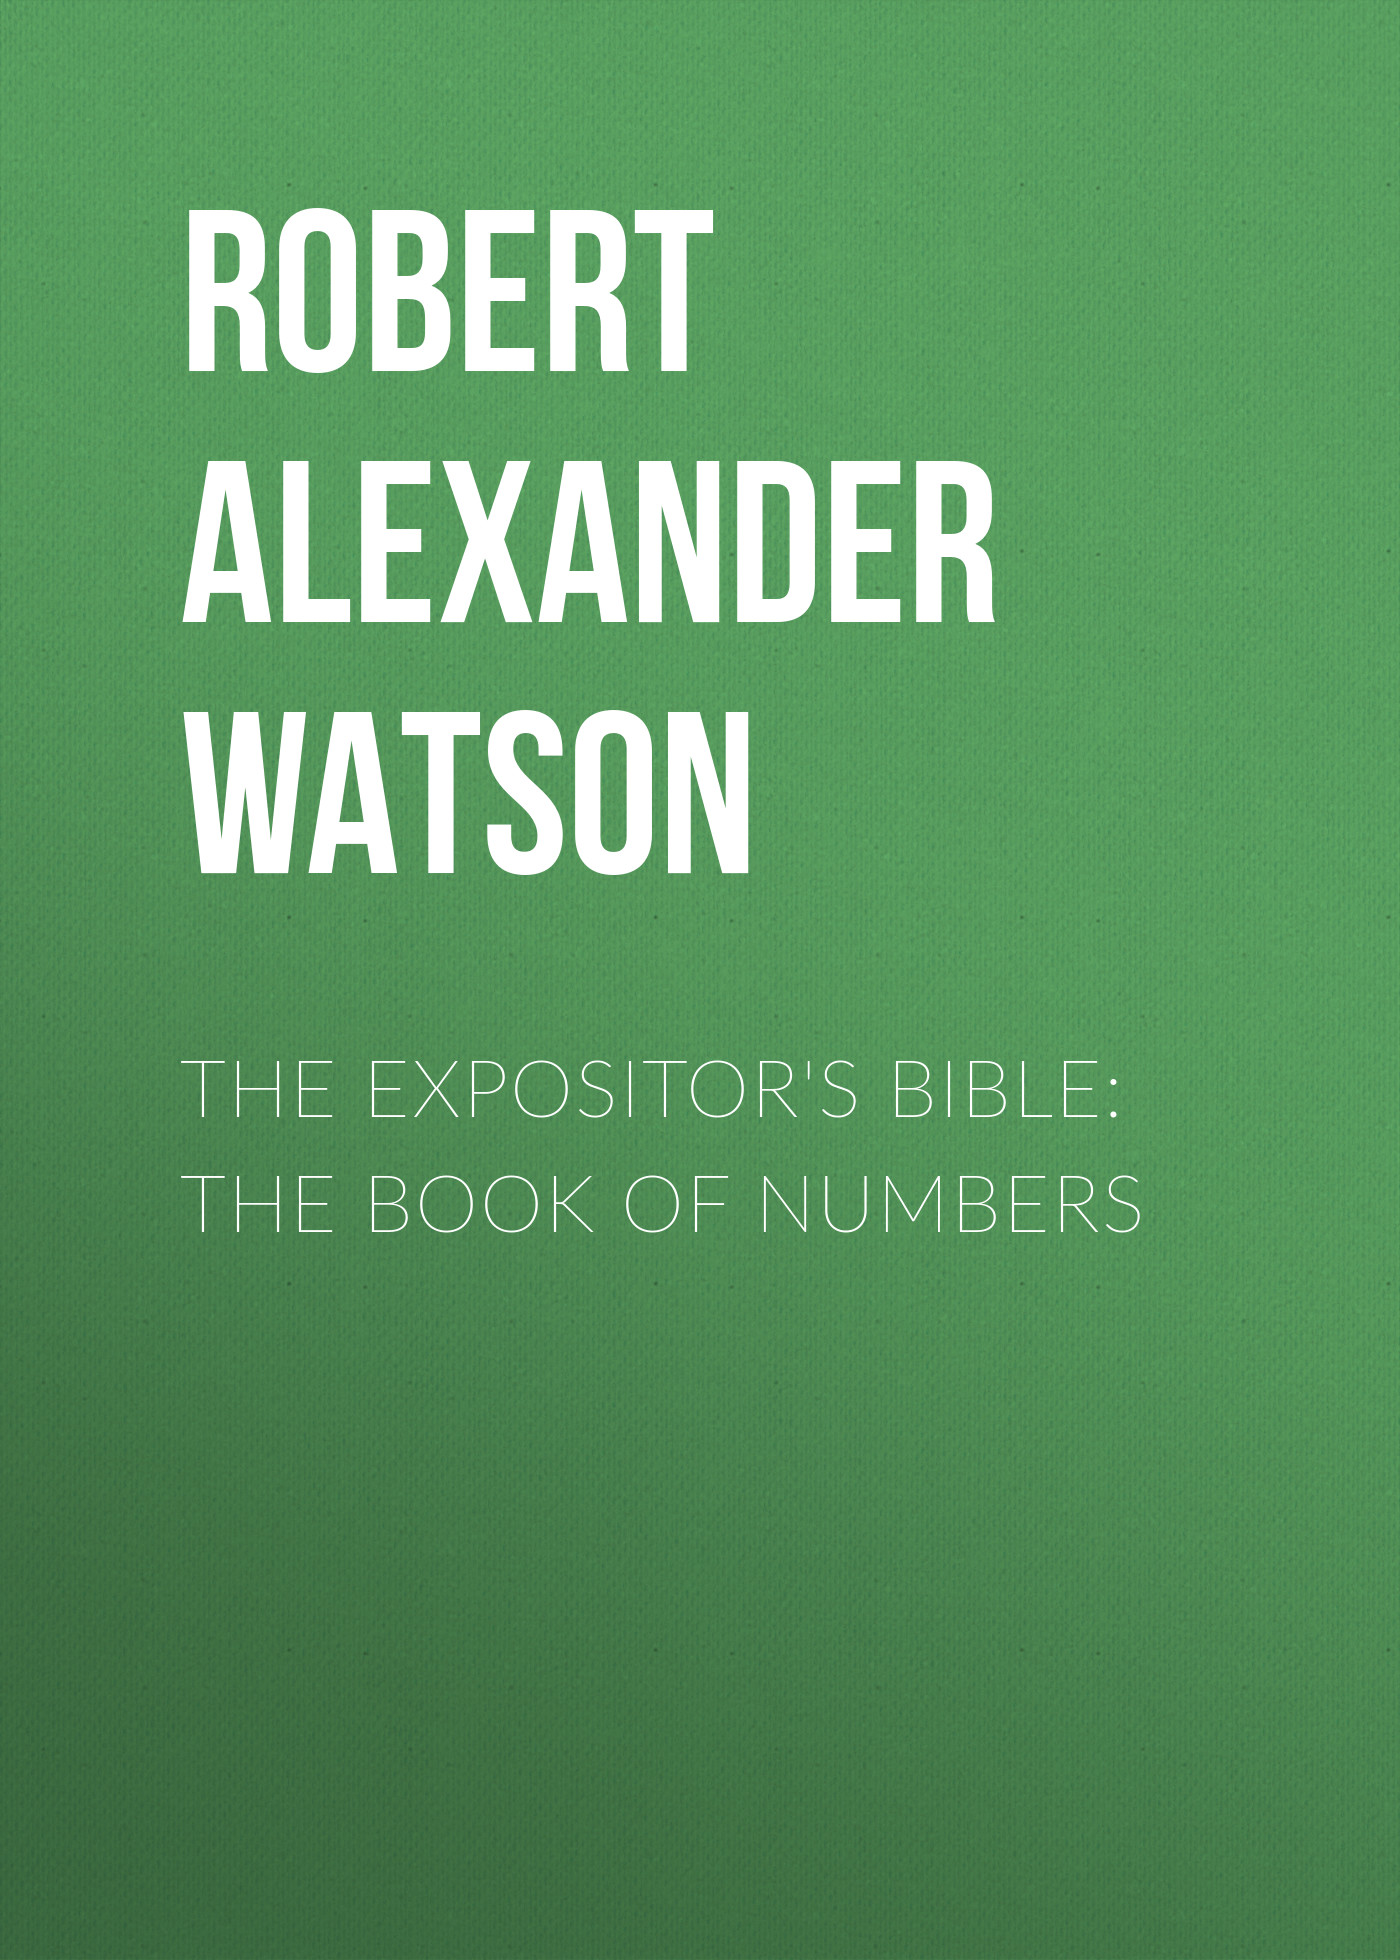 Robert Alexander Watson The Expositor's Bible: The Book of Numbers robert alexander watson the expositor s bible judges and ruth